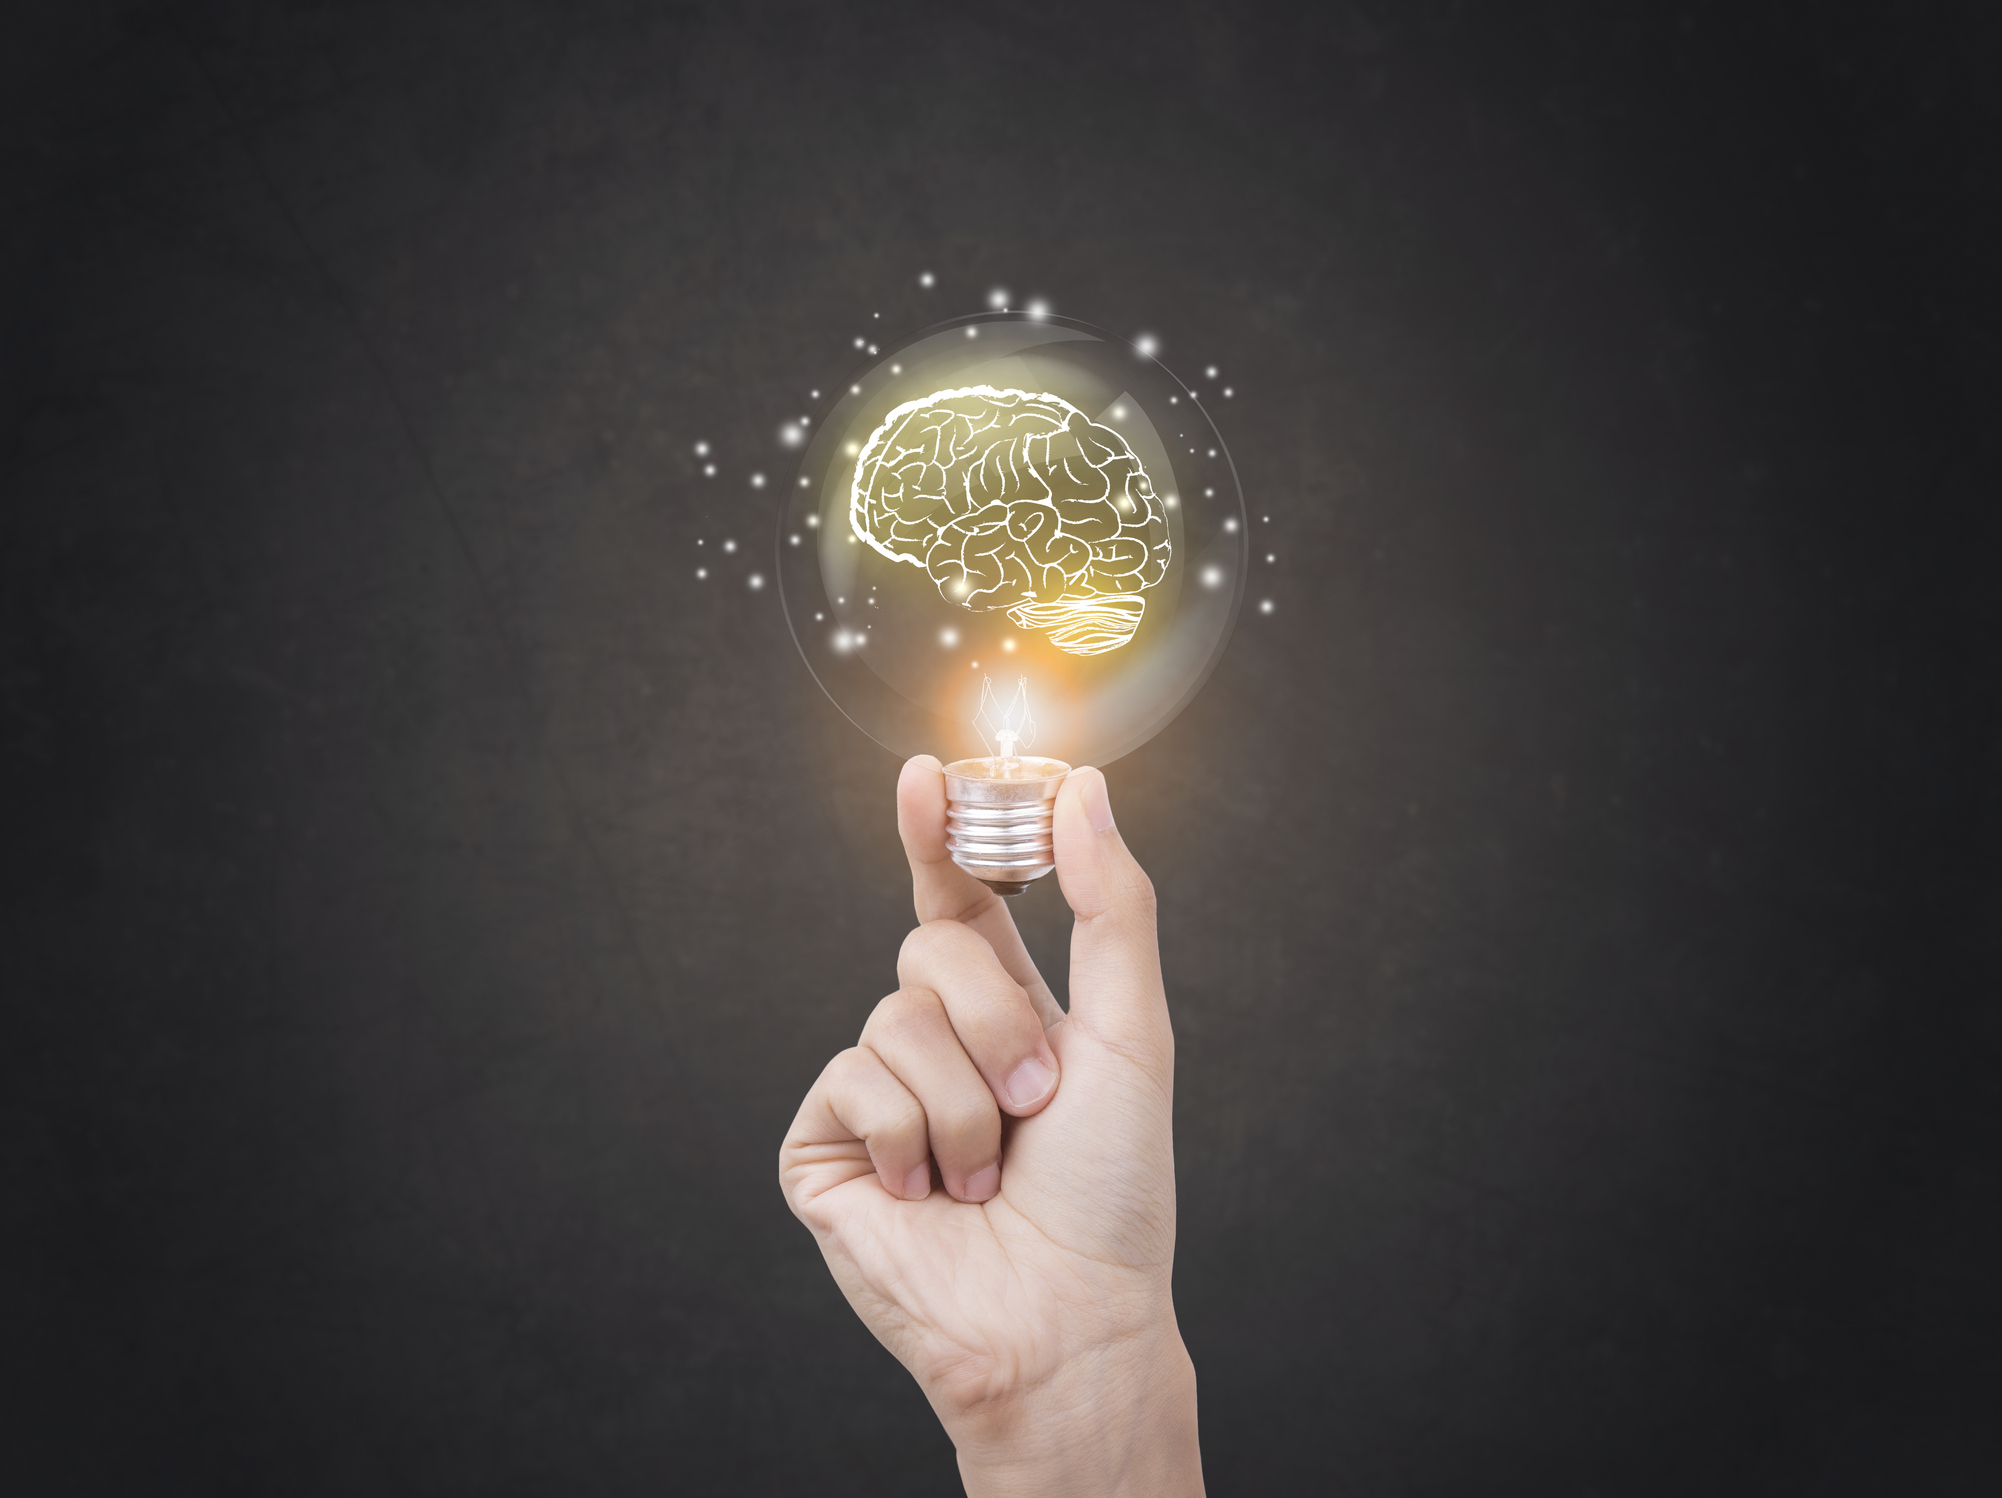 Light up your creativity through mind mapping